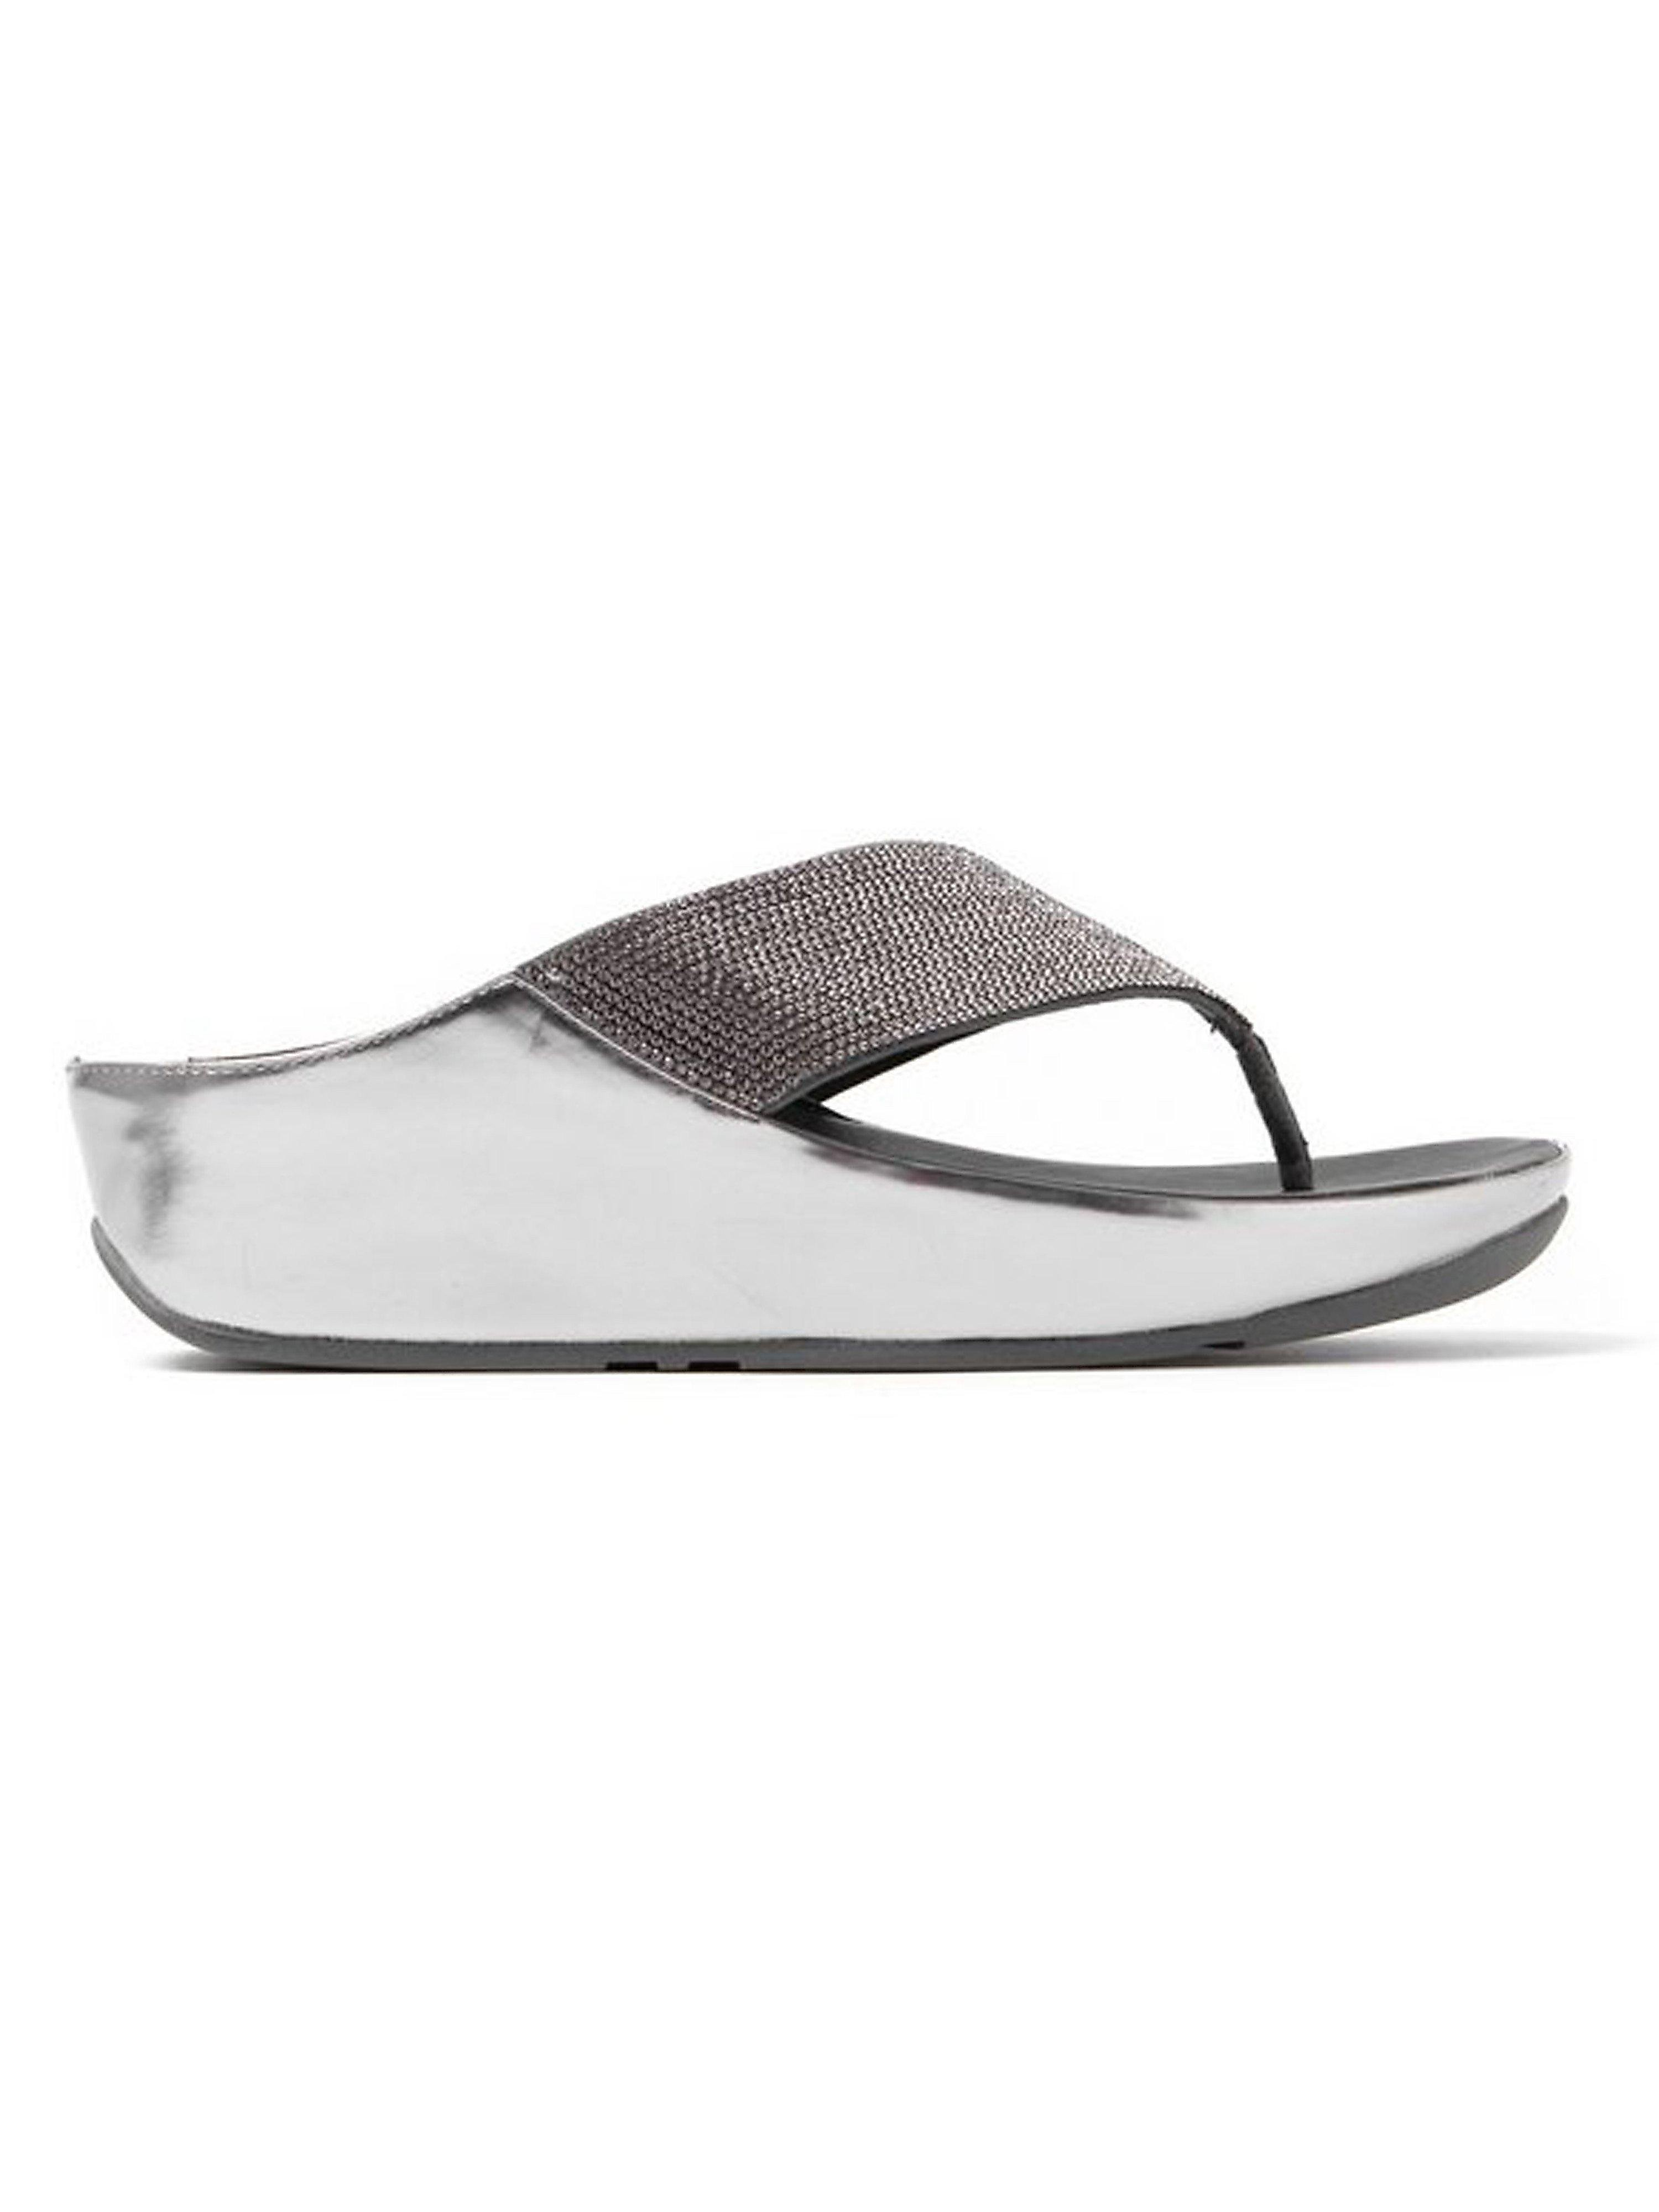 FitFlop Women's Crystall Slide Cross Strap Sandals - Pewter